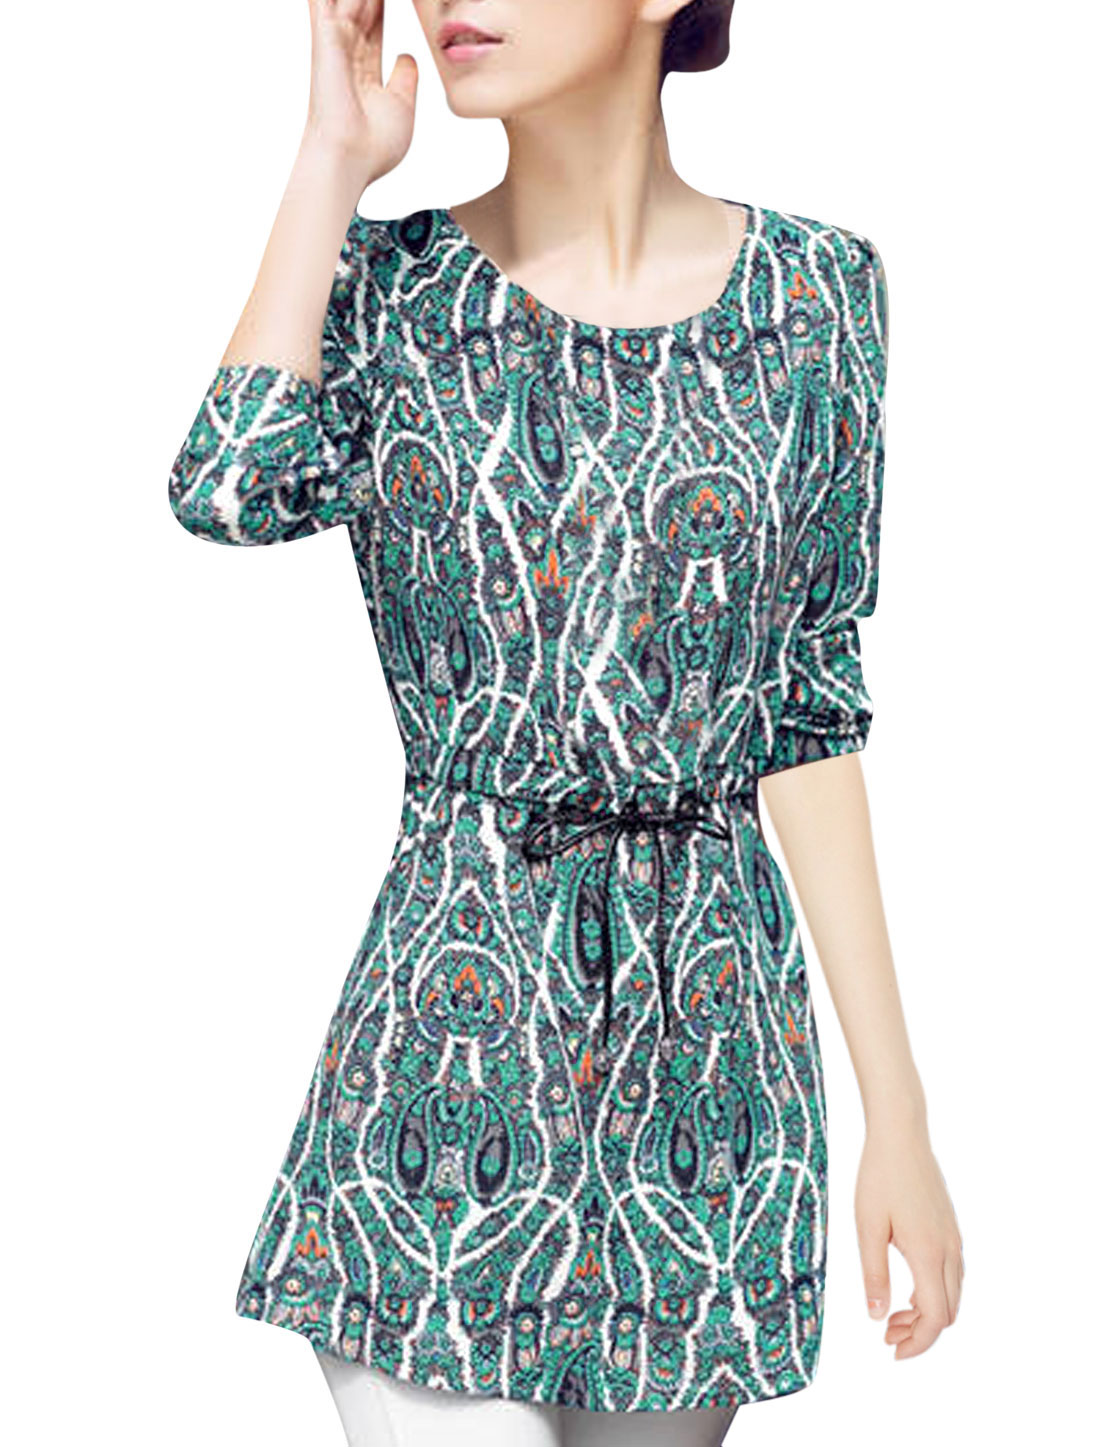 Lady Drawcord Waist Slant Pockets Front Leisure Tunic Blouse Sea Green S